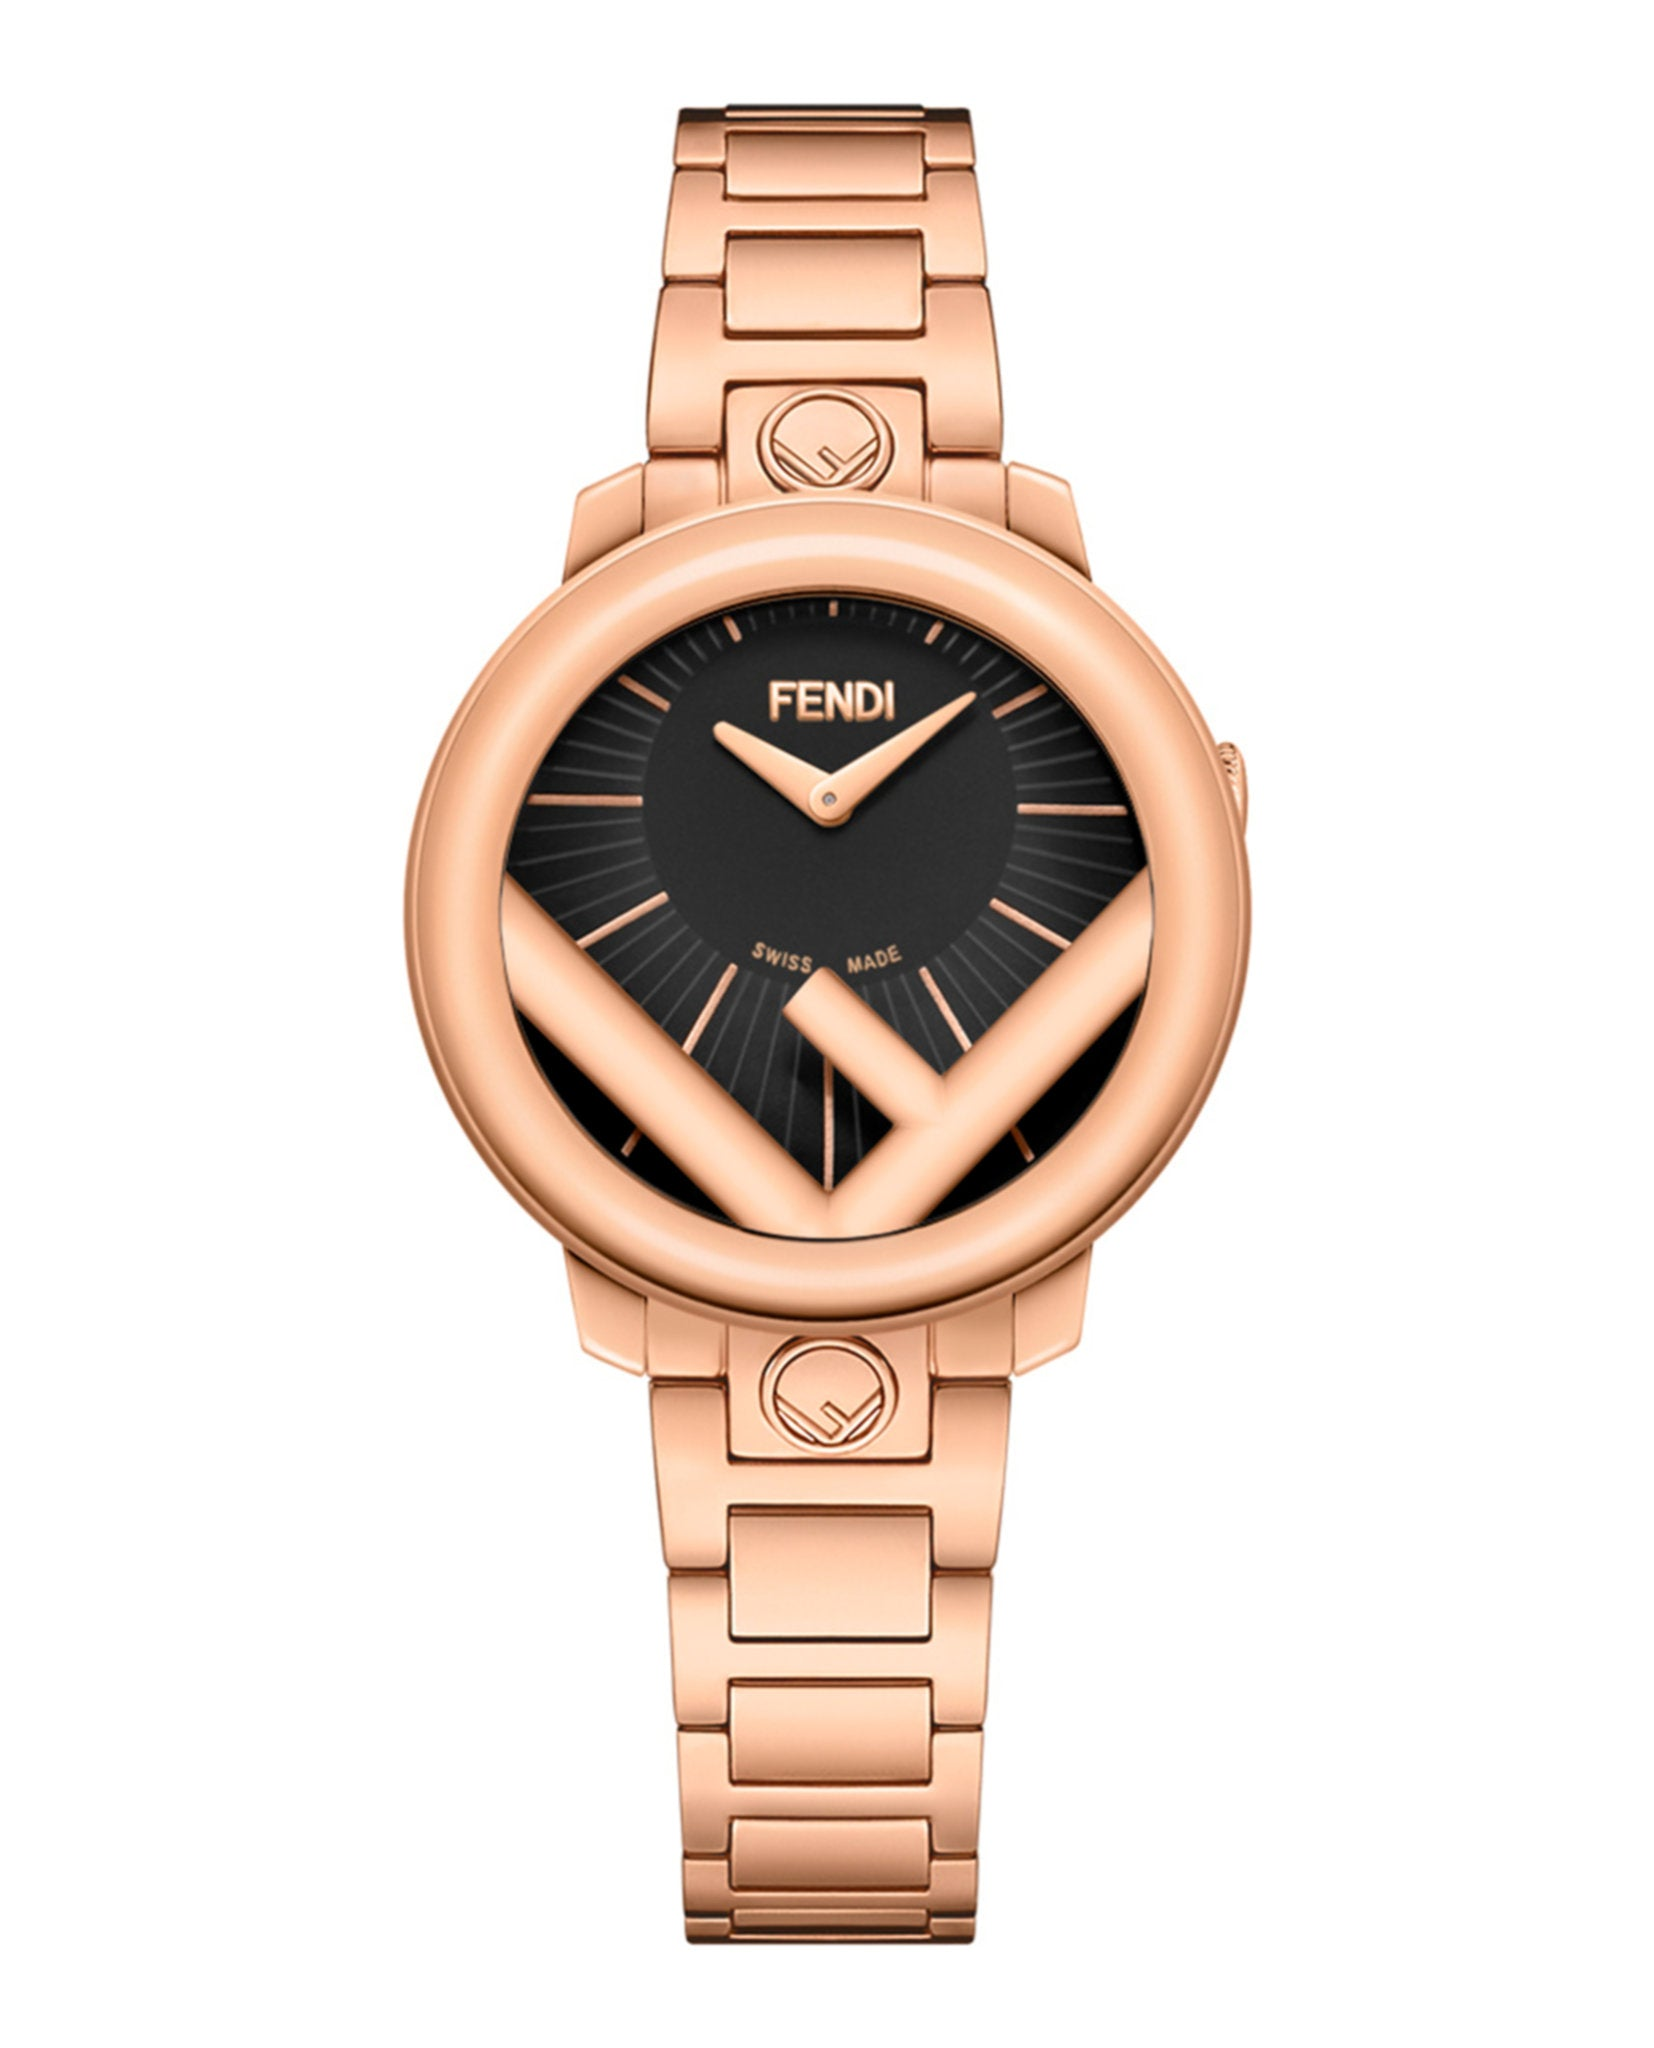 Fendi Run Away Watch